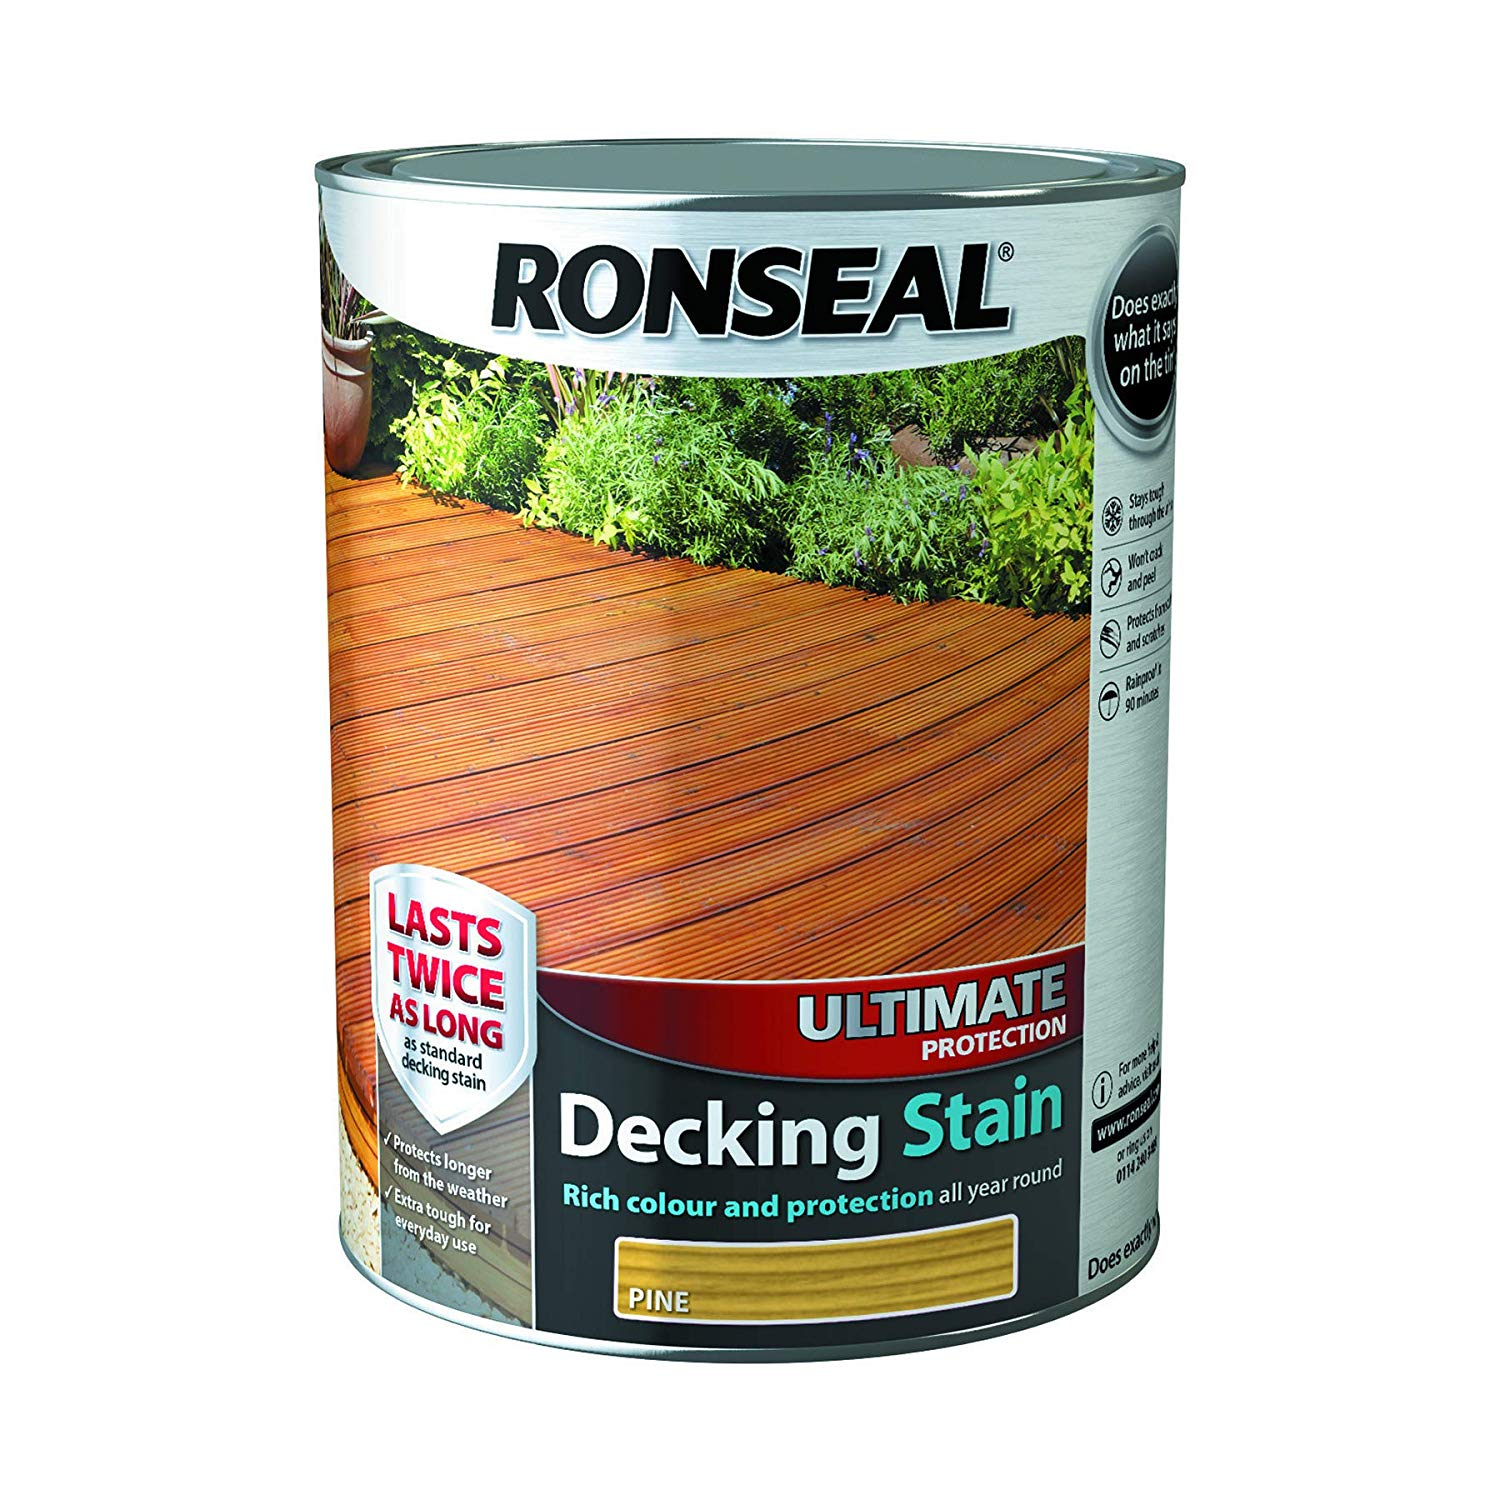 RONSEAL ULTIMATE PROTECTION DECKING STAIN  Natural Pine  5 Litres